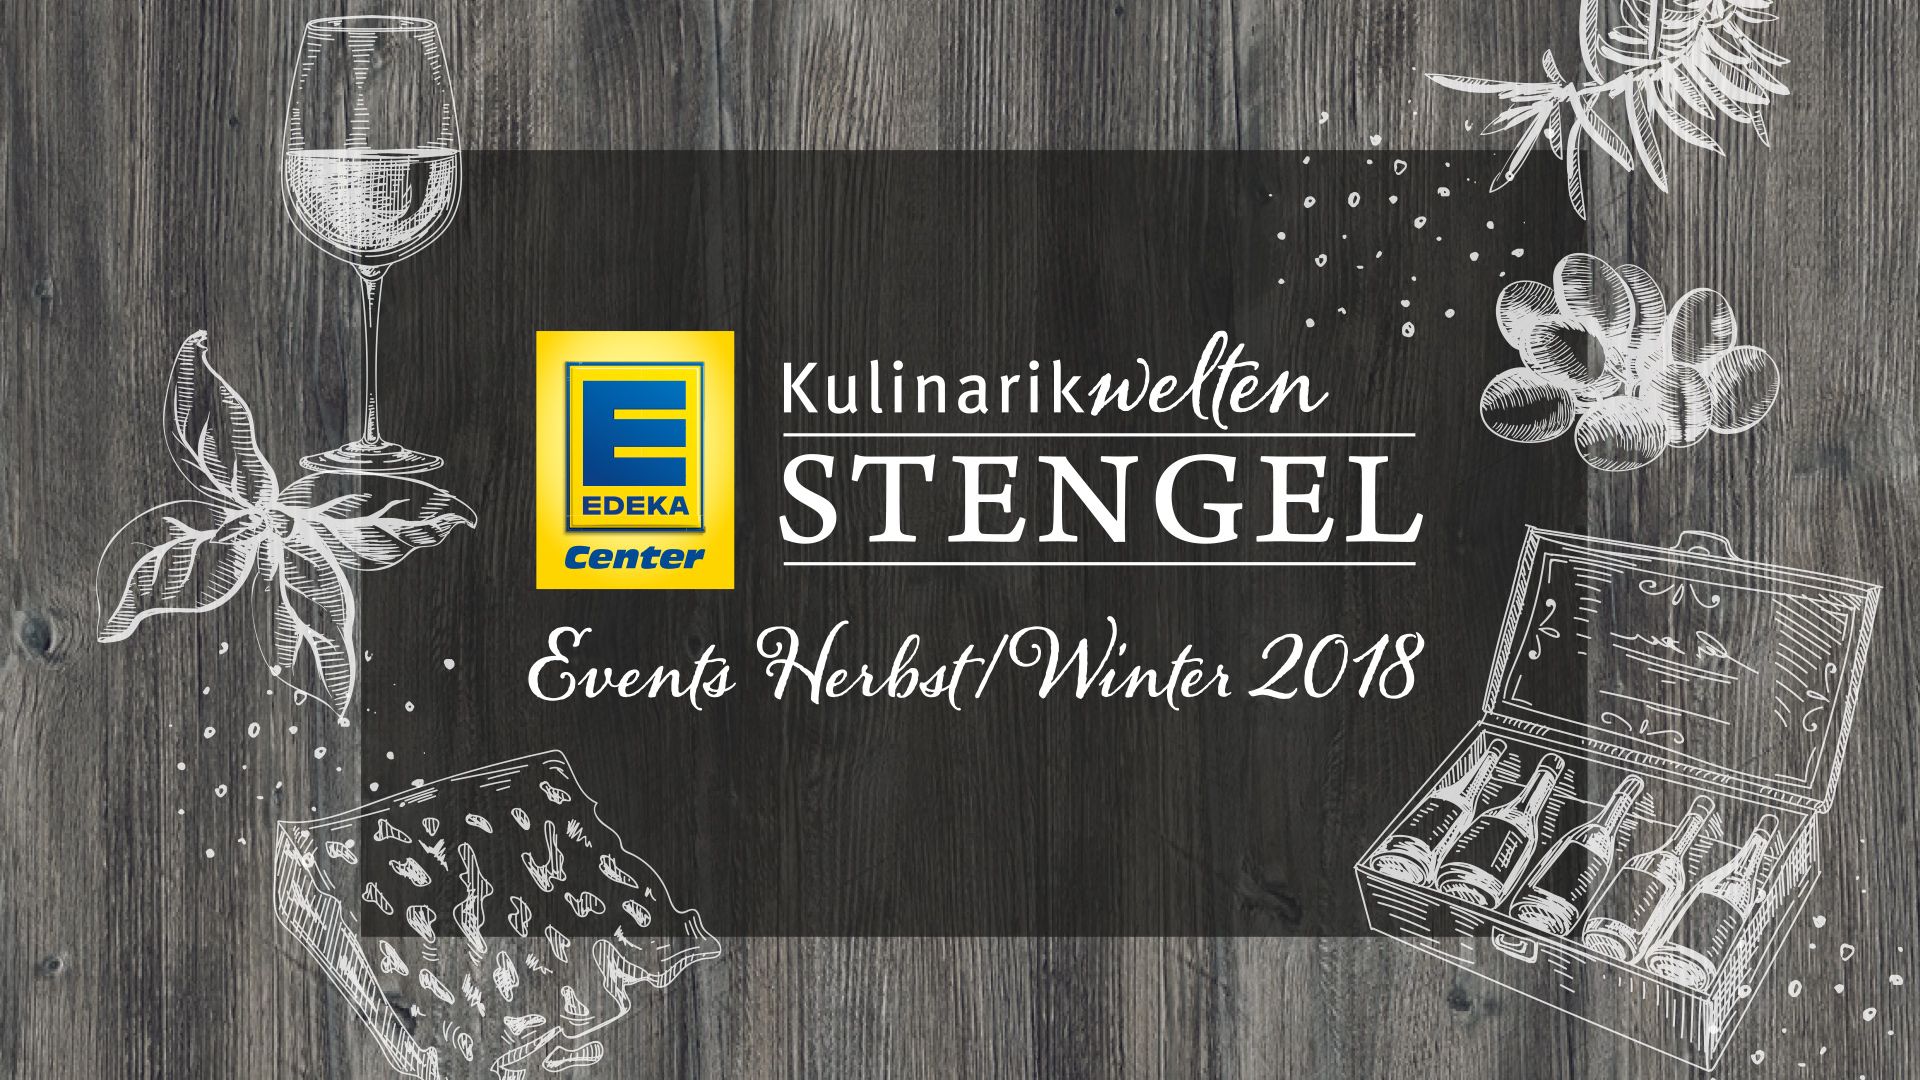 Edeka Center Stengel Events in Fürth bei Nürnberg